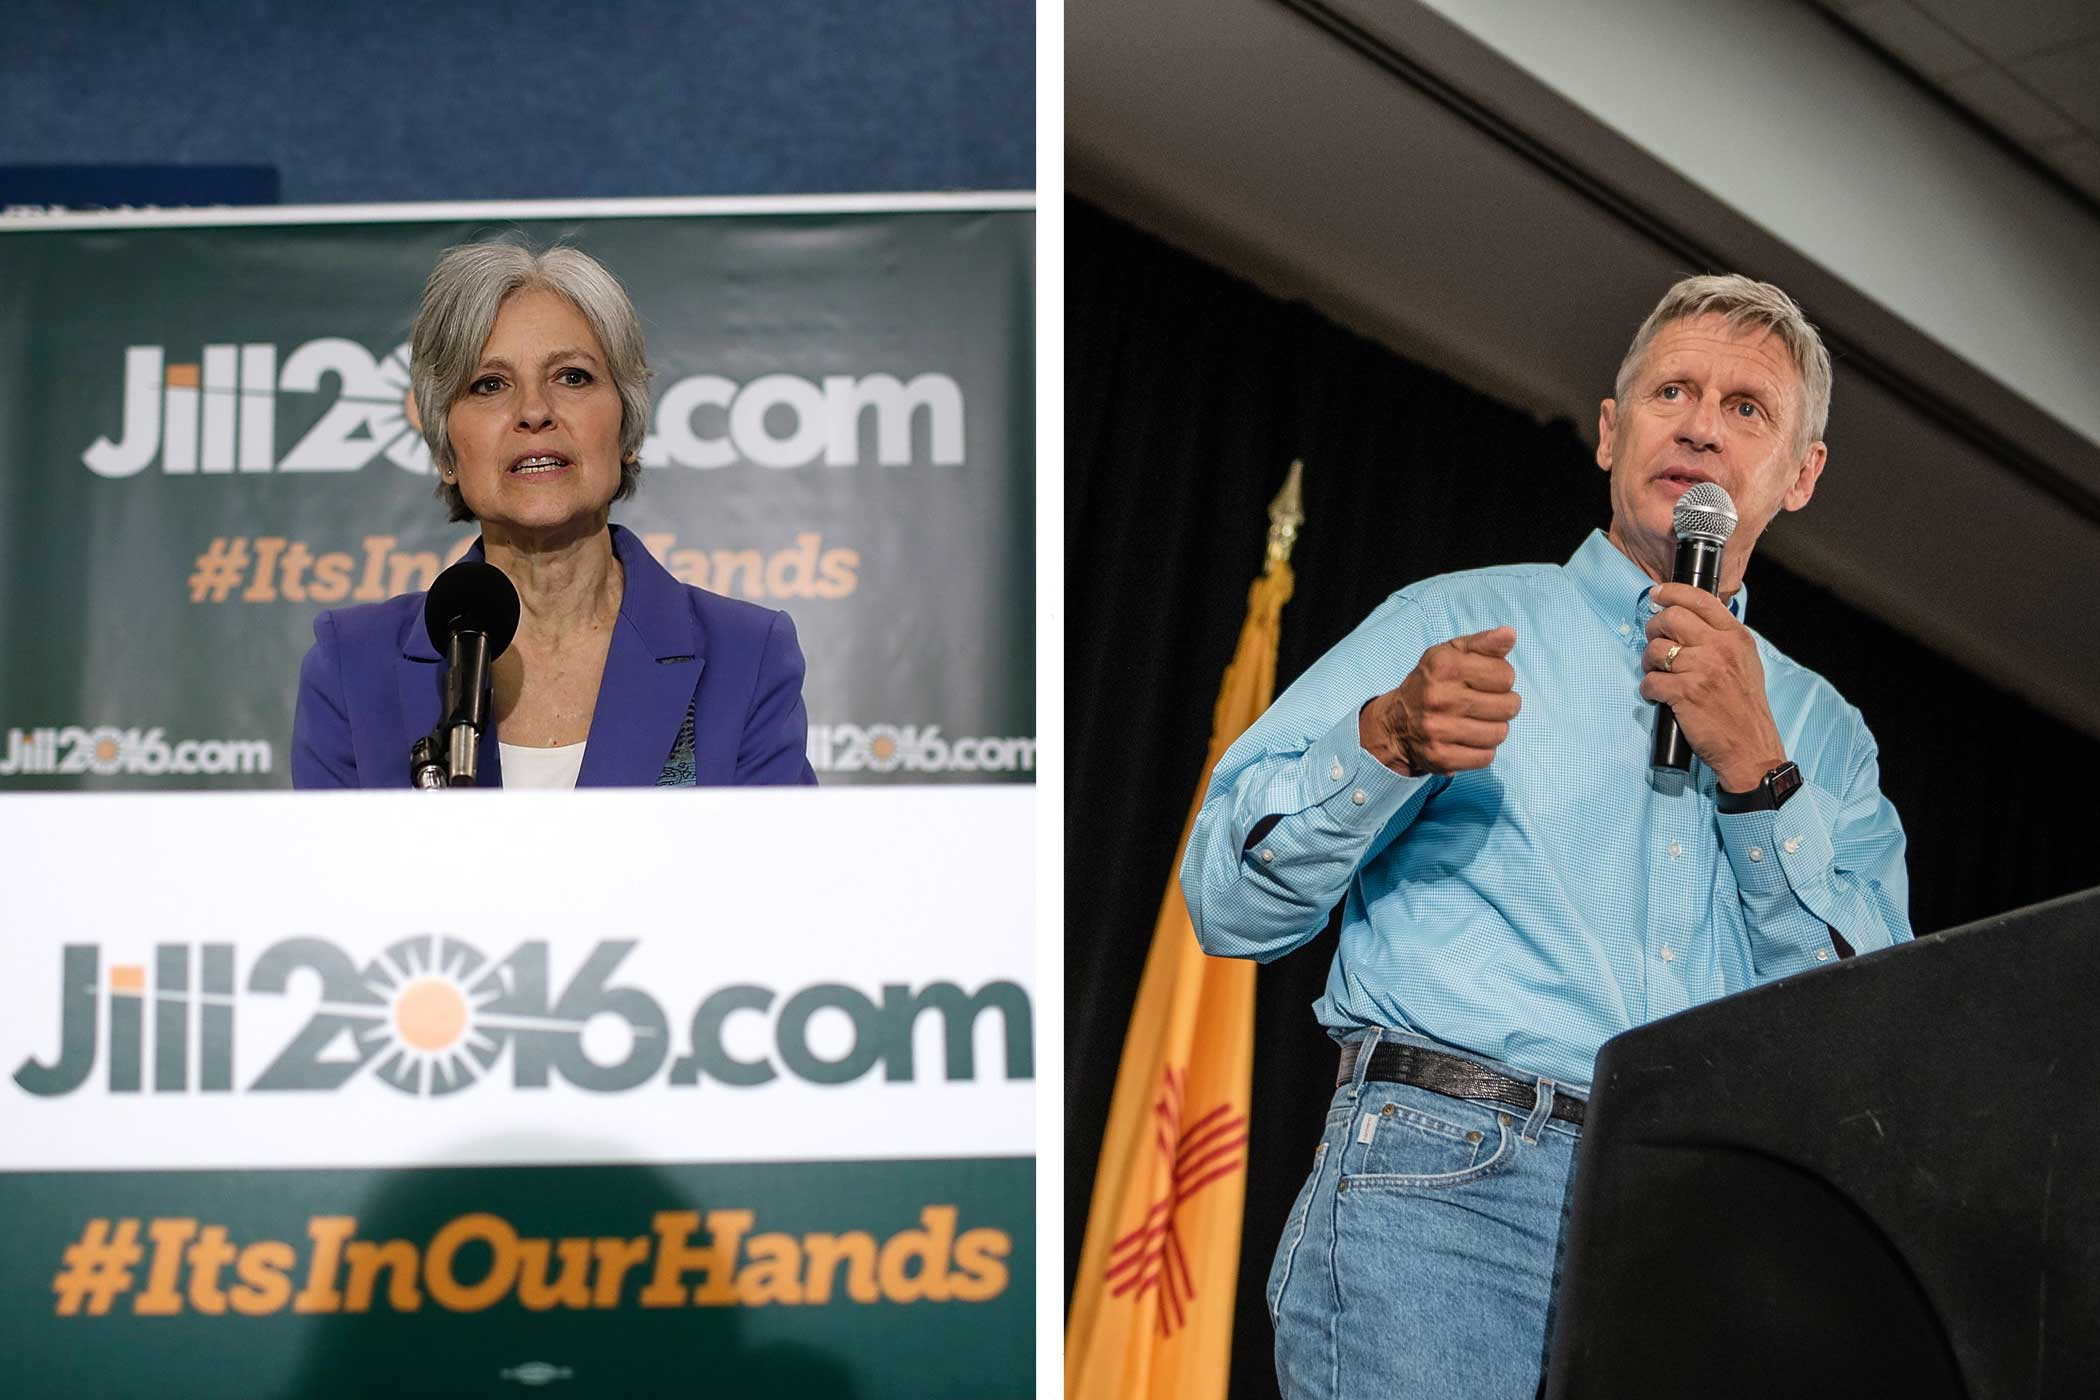 Green Party candidate Jill Stein and Libertarian Party candidate Gary Johnson